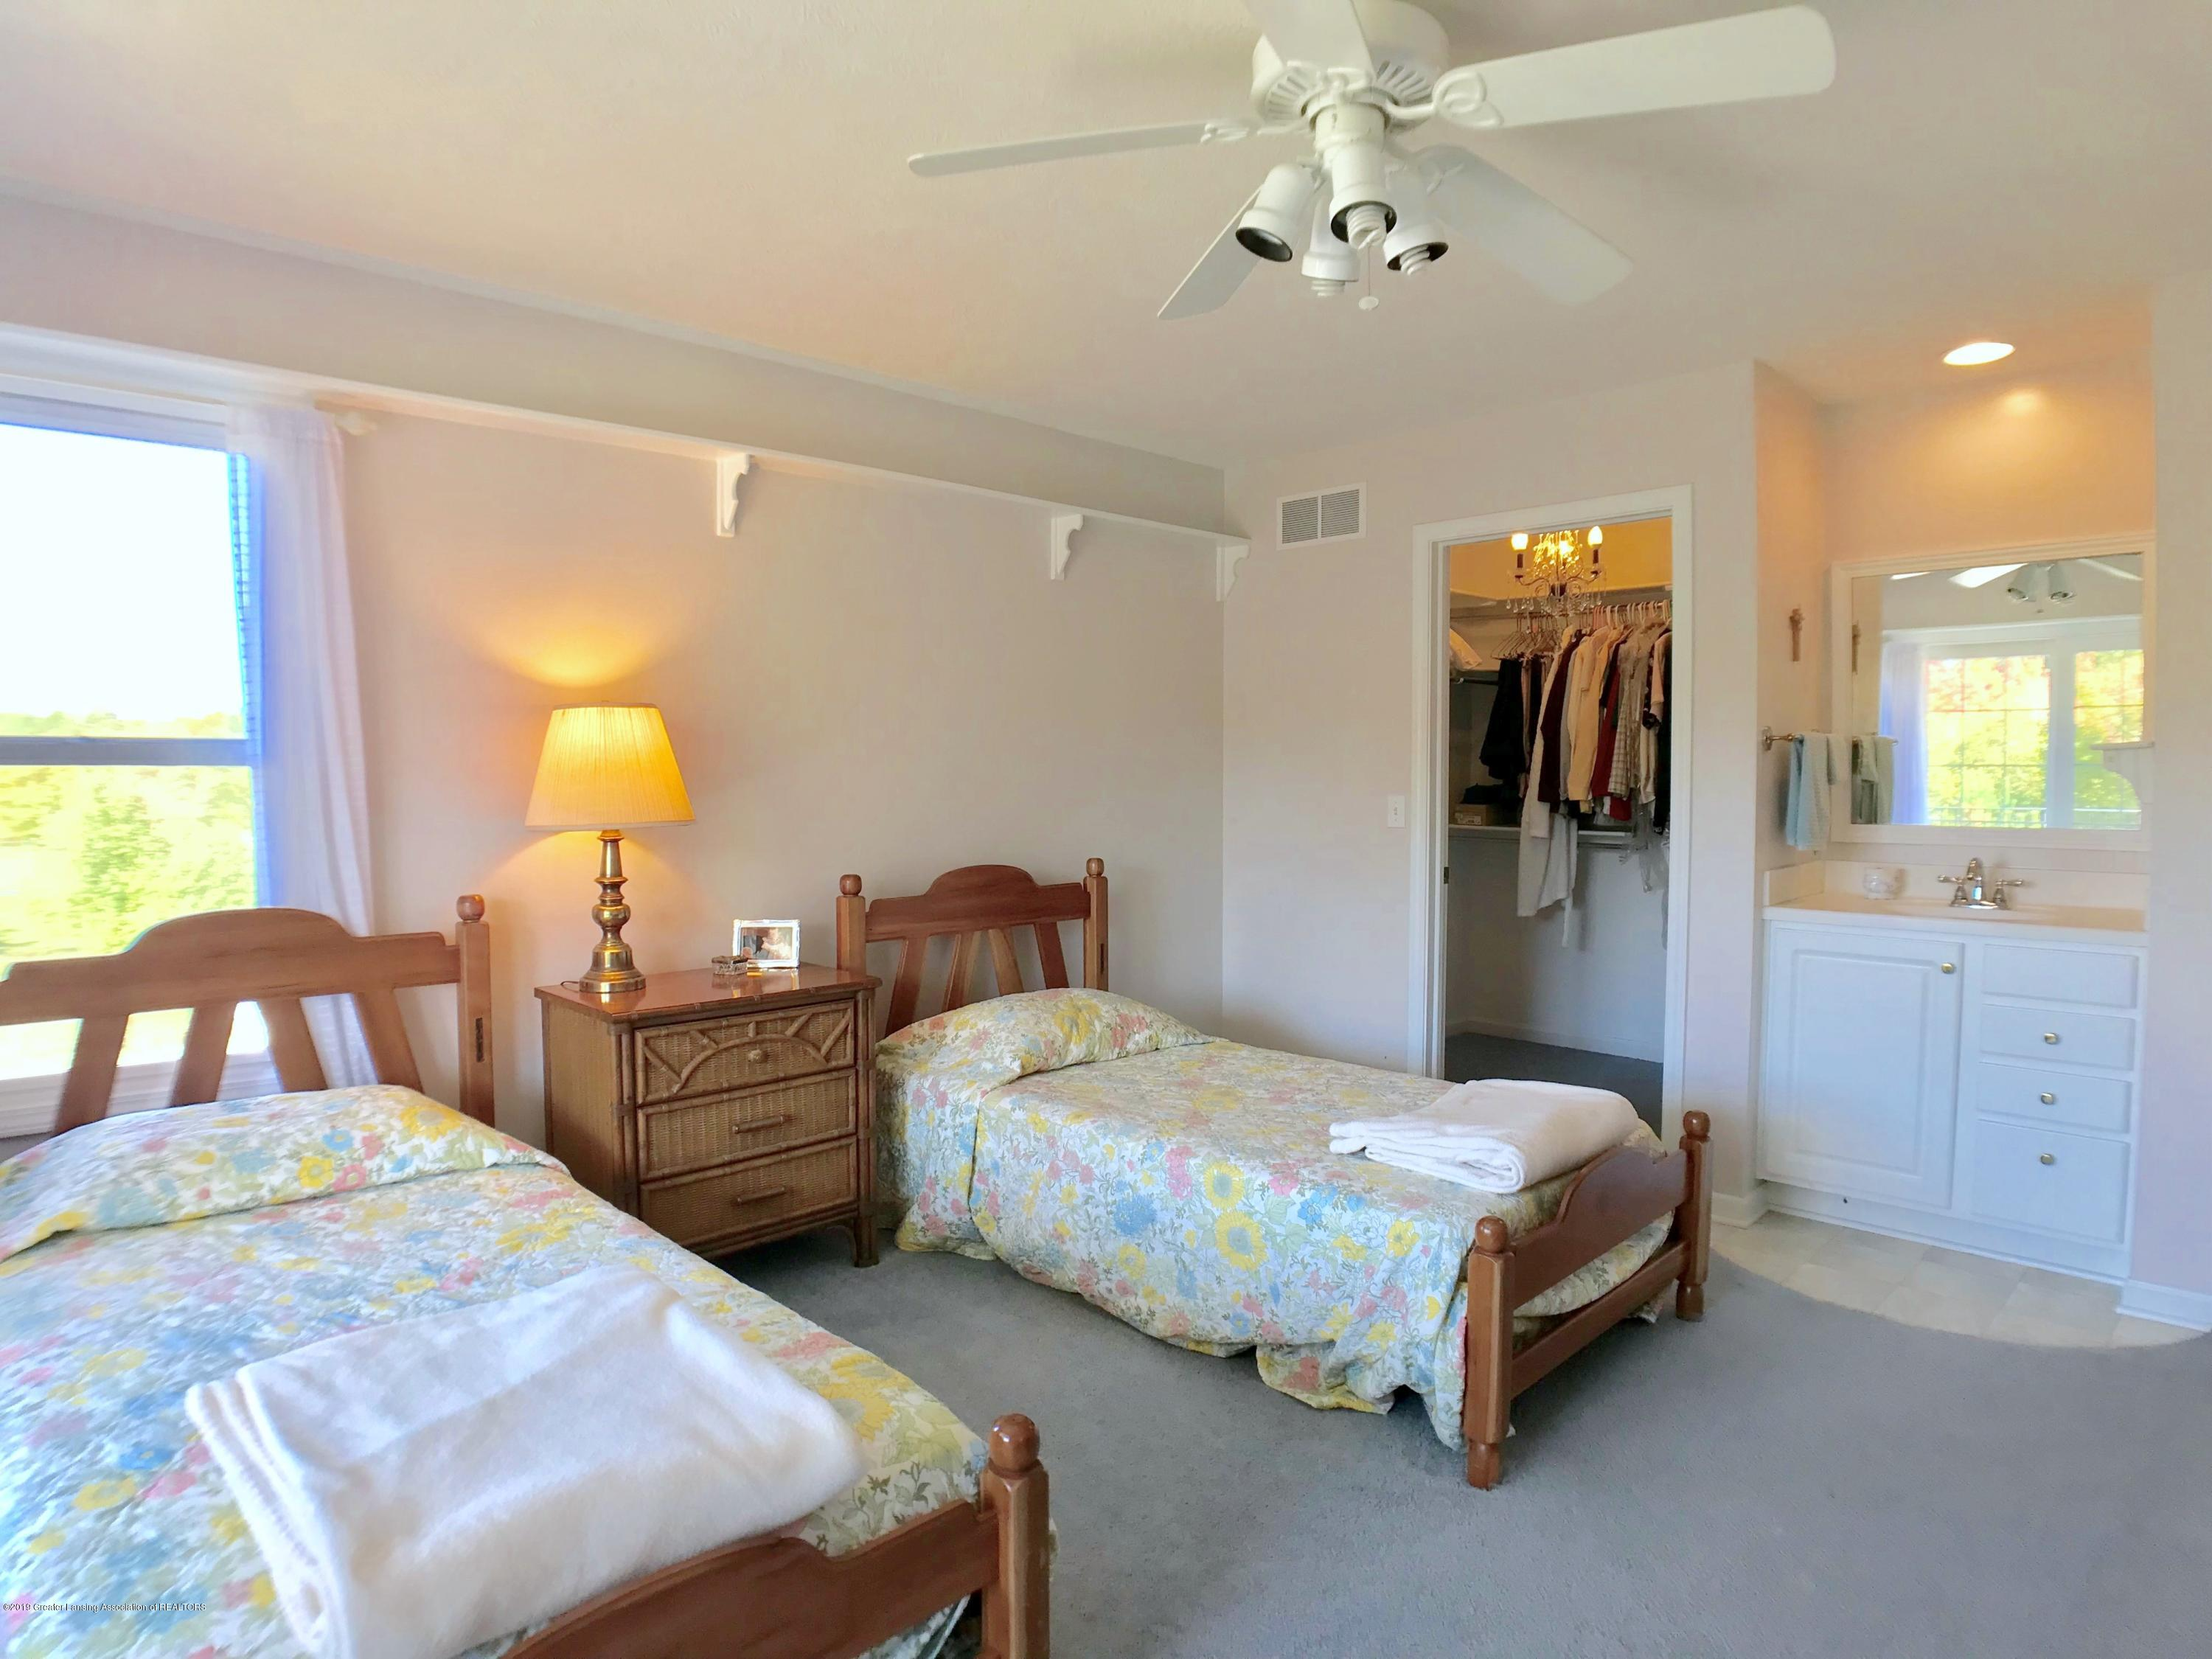 6430 Quail Ridge Ln - Bedroom - 37